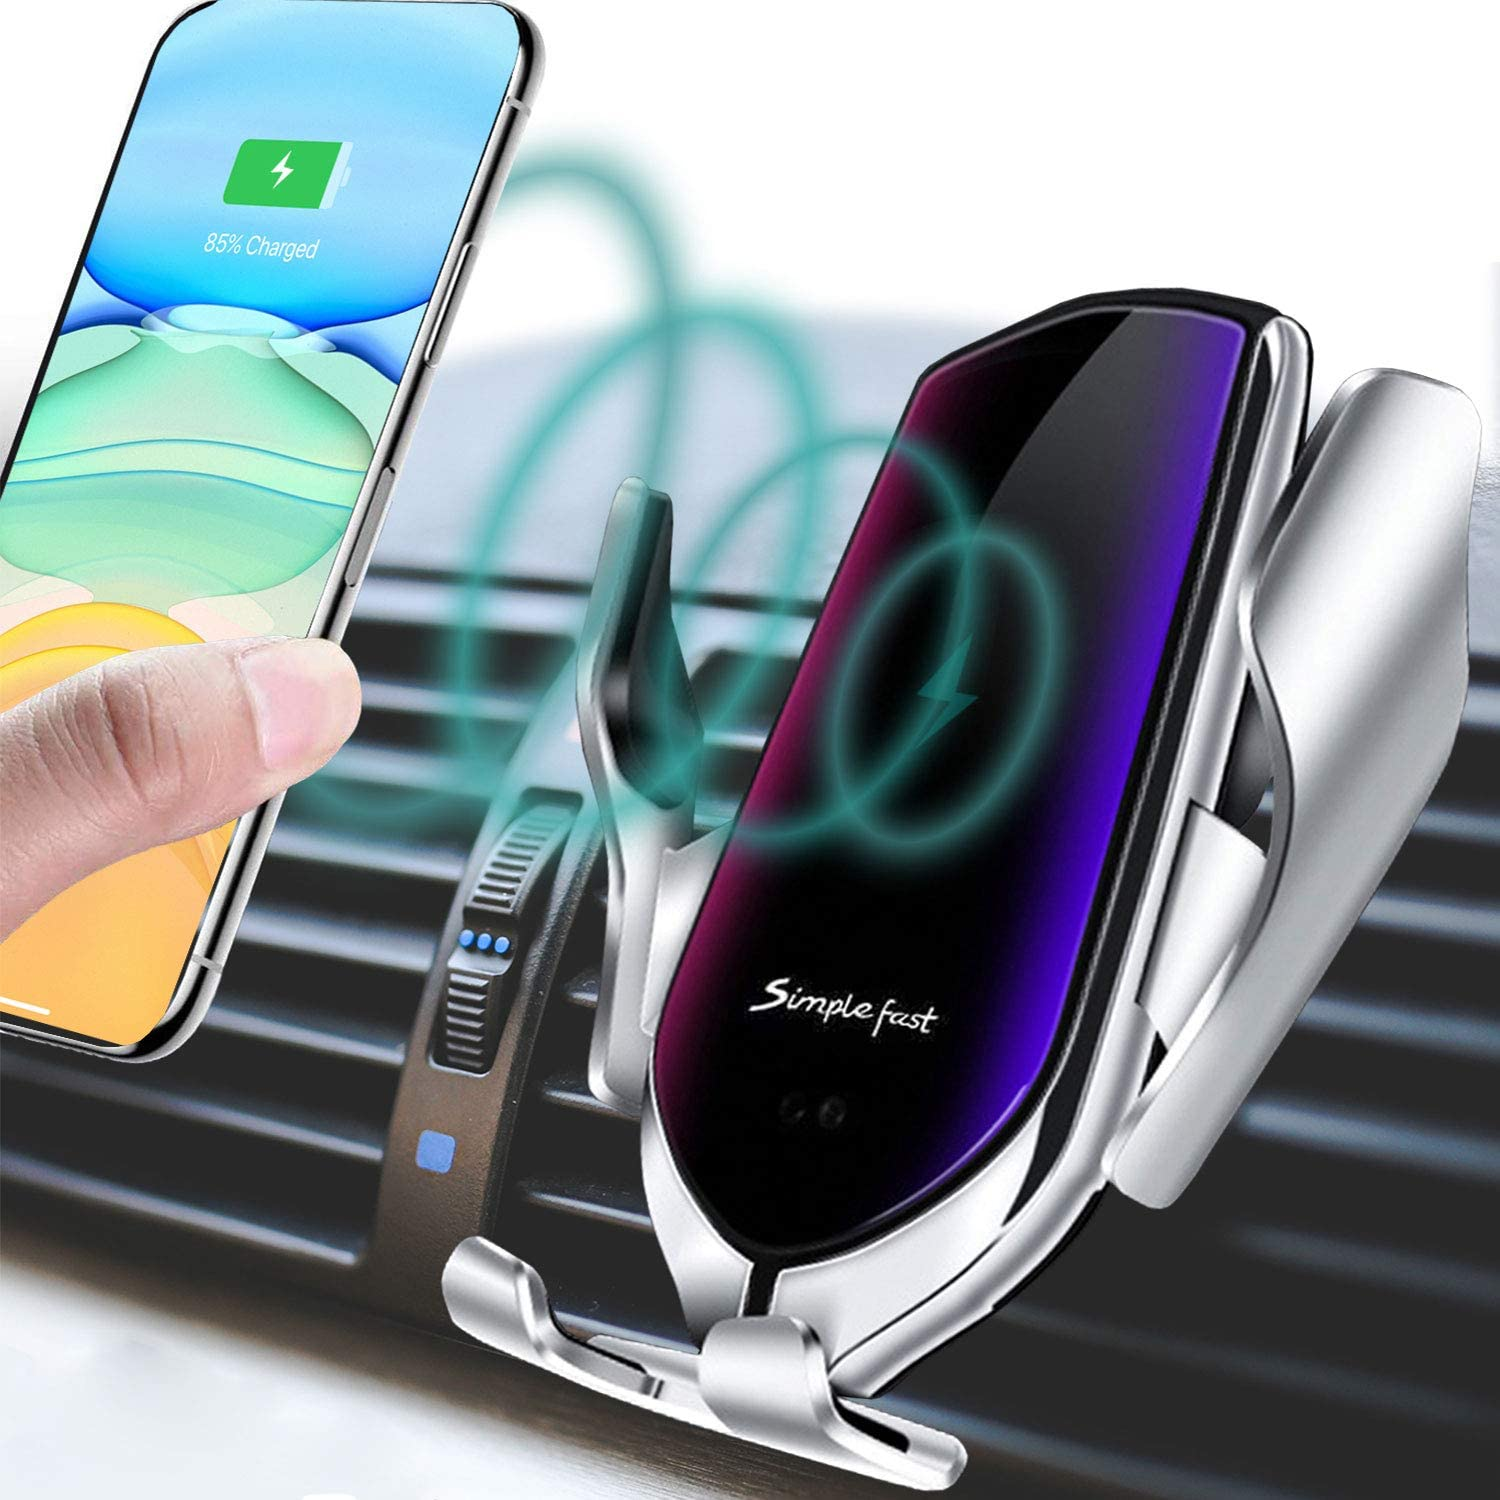 Smart Sensor Wireless Car Charger Mount New Model 2020 10W Qi Fast Charging Auto-Clamping Car Mount Air Vent Phone Holder Compatible with iPhone-Samsung,etc. Silver